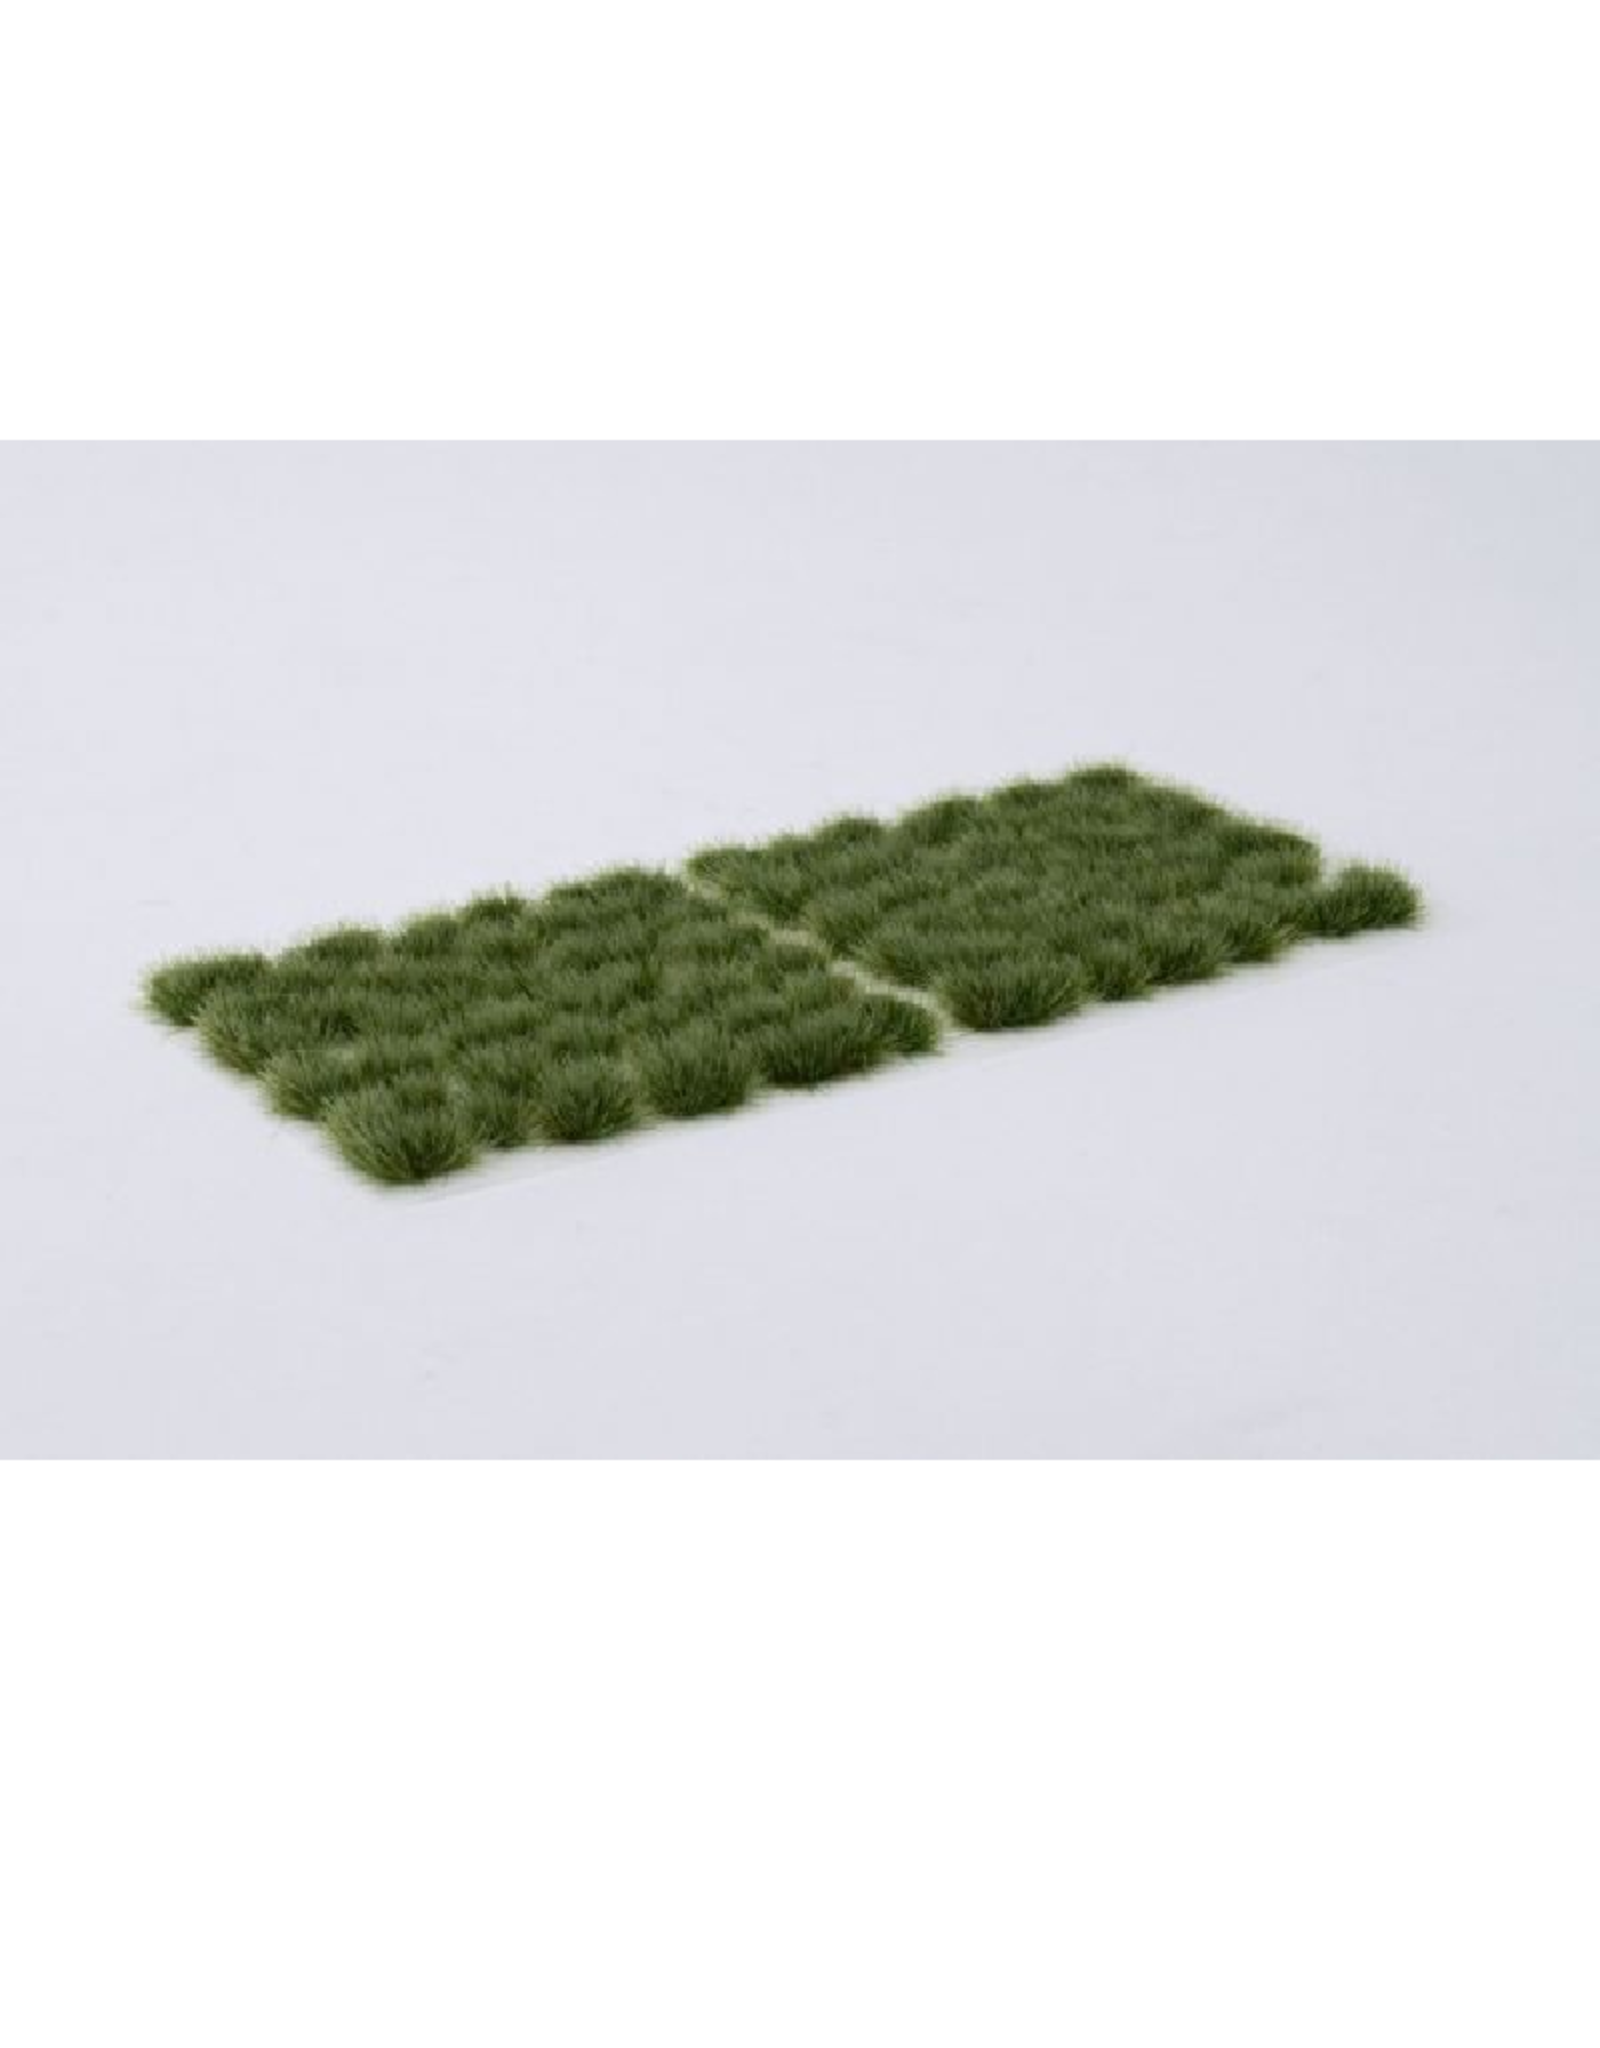 Gamers' Grass Strong Green Tufts (6mm)